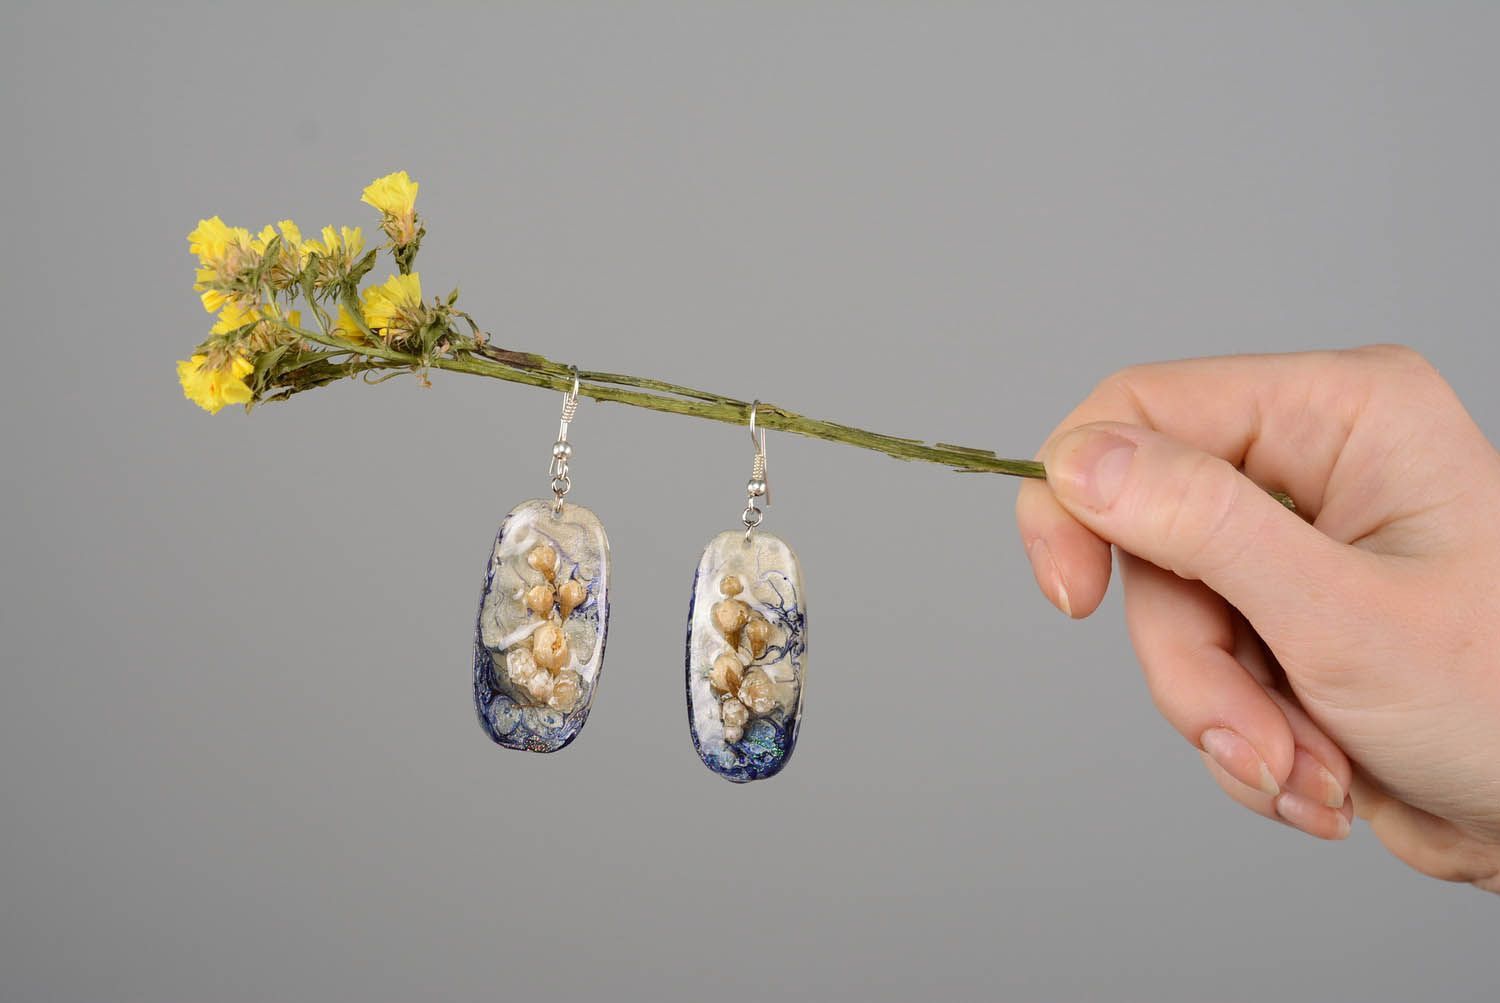 resin dry flower earrings Earrings made of flowers and epoxy resin - MADEheart.com